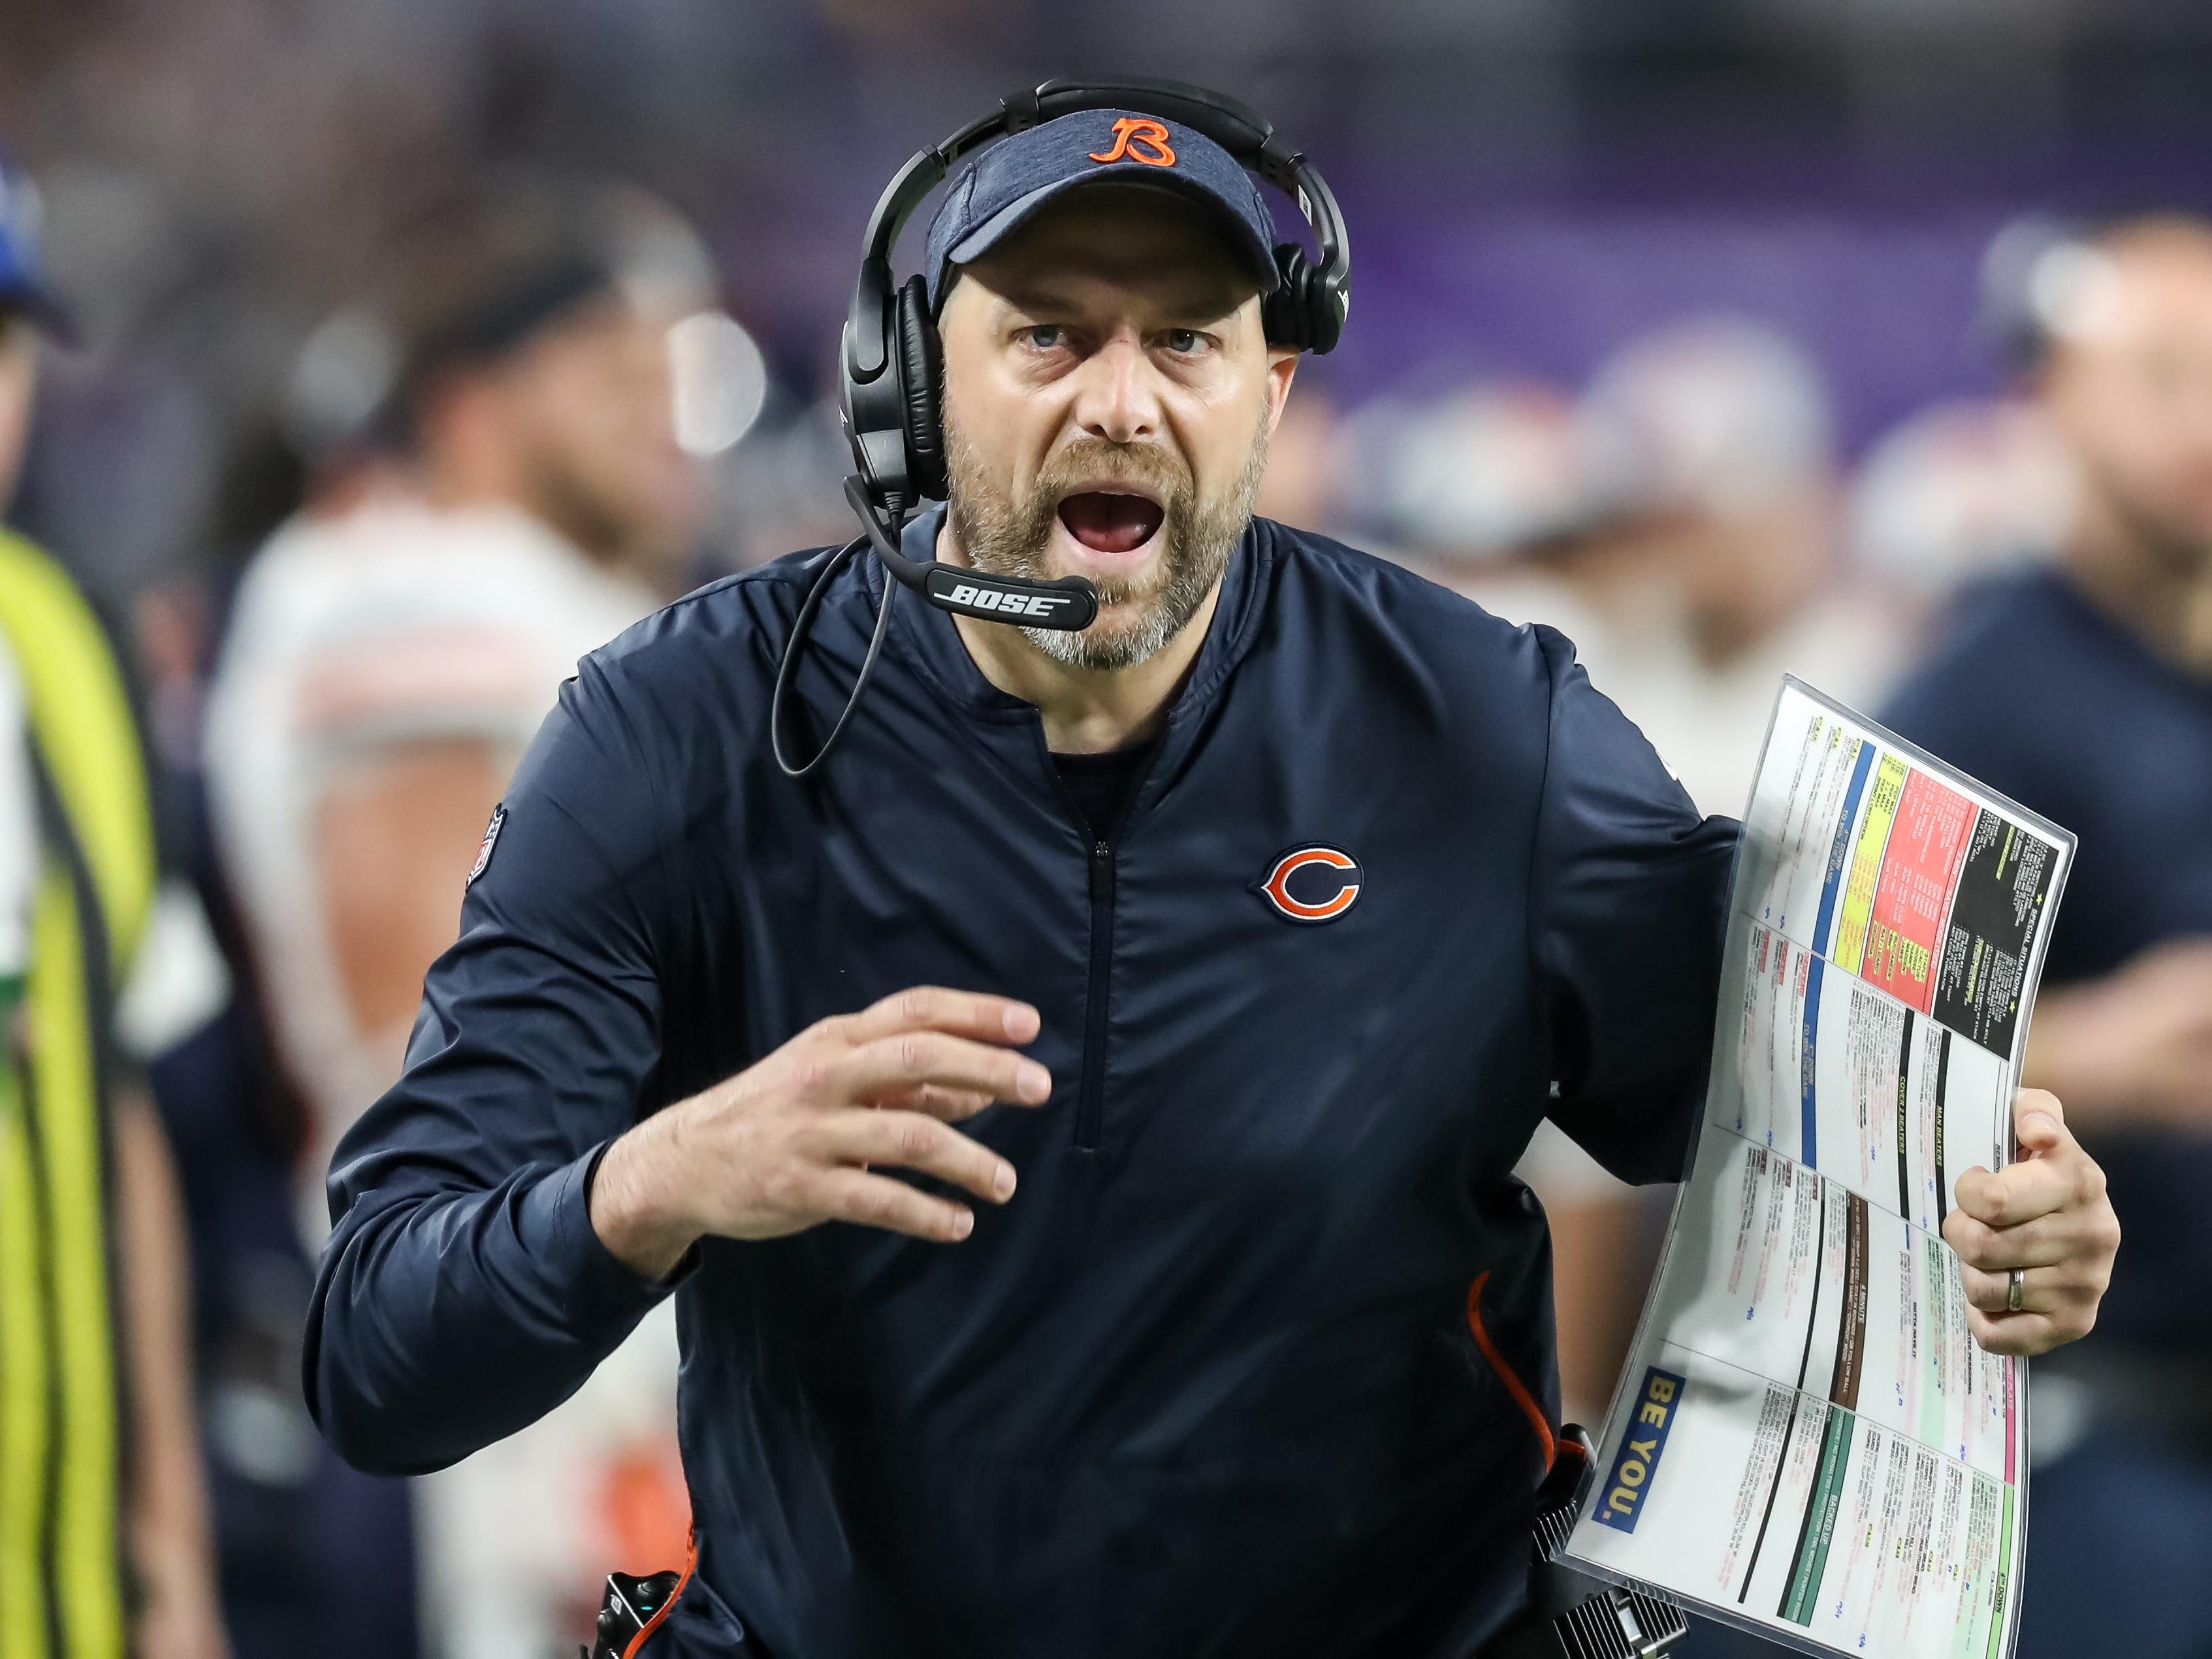 7. Bears (2): Magical season under rookie coach Matt Nagy. But can GM Ryan Pace improve roster with little cap space and no draft pick before Round 3?